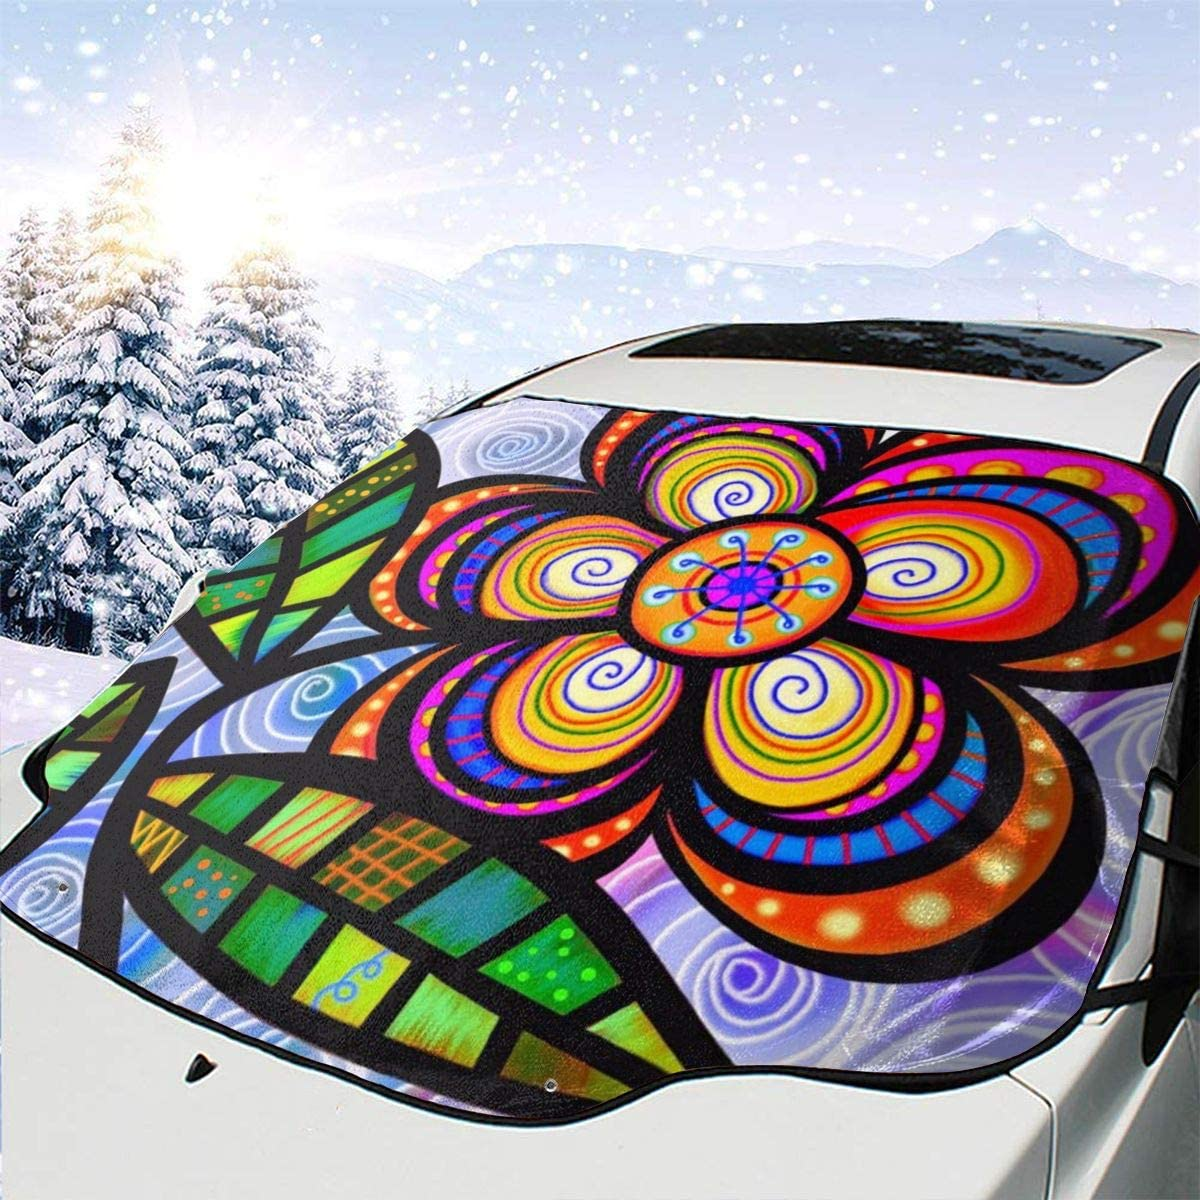 THONFIRE Car Front Window Windshields Frost Sun Shade Patterned Flower Cover Rainproof Blocks Heat Keeps Your Vehicle Cool Visor Protector Auto Autumn Heat Reflector